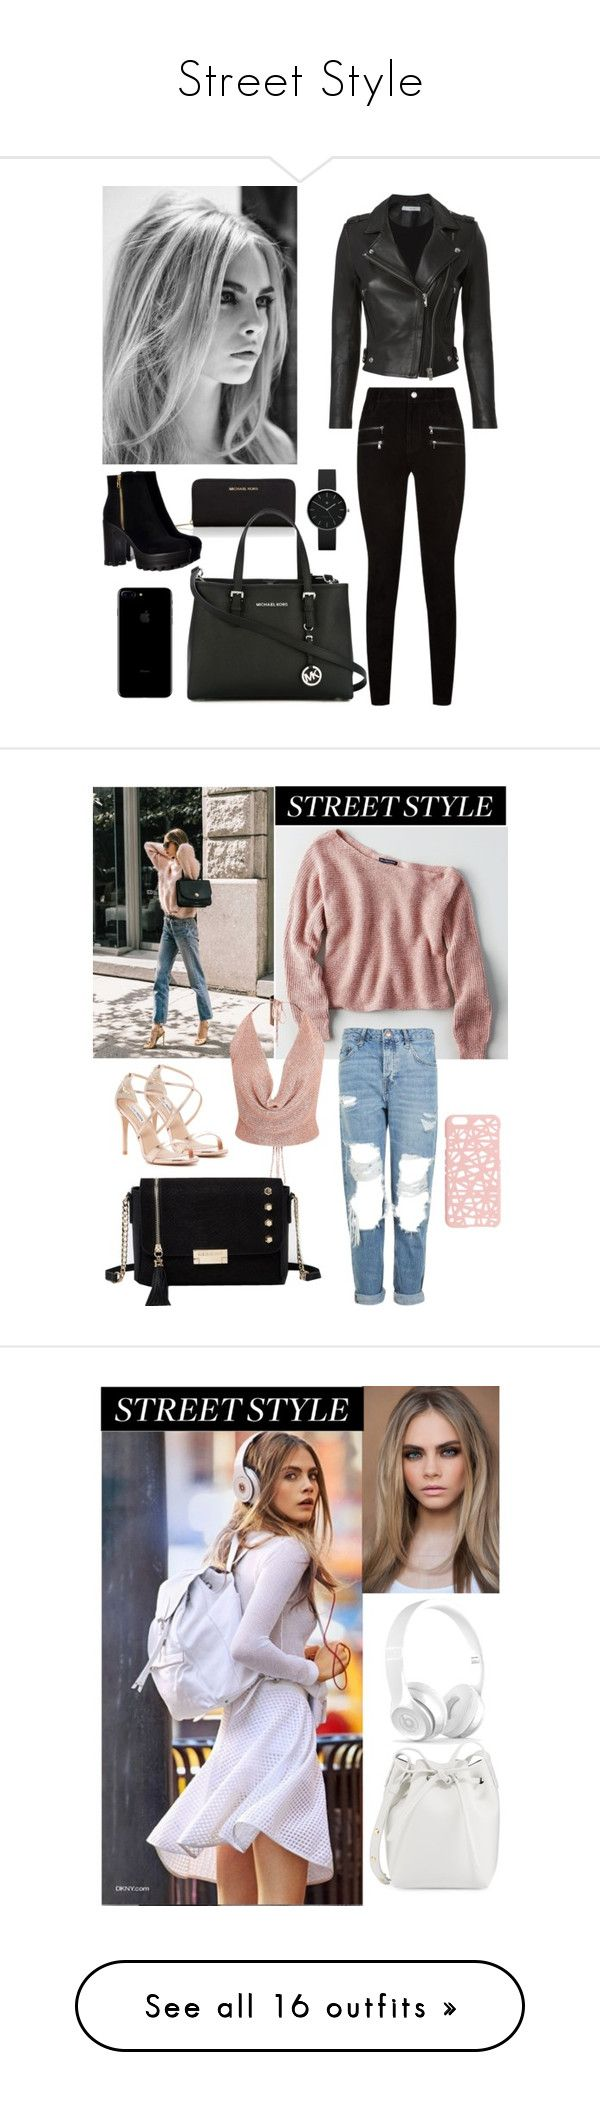 """Street Style"" by sophie01234 ❤ liked on Polyvore featuring Michael Kors, MICHAEL Michael Kors, IRO, Newgate, Paige Denim, American Eagle Outfitters, Topshop, Steve Madden, Miss Selfridge and River Island"